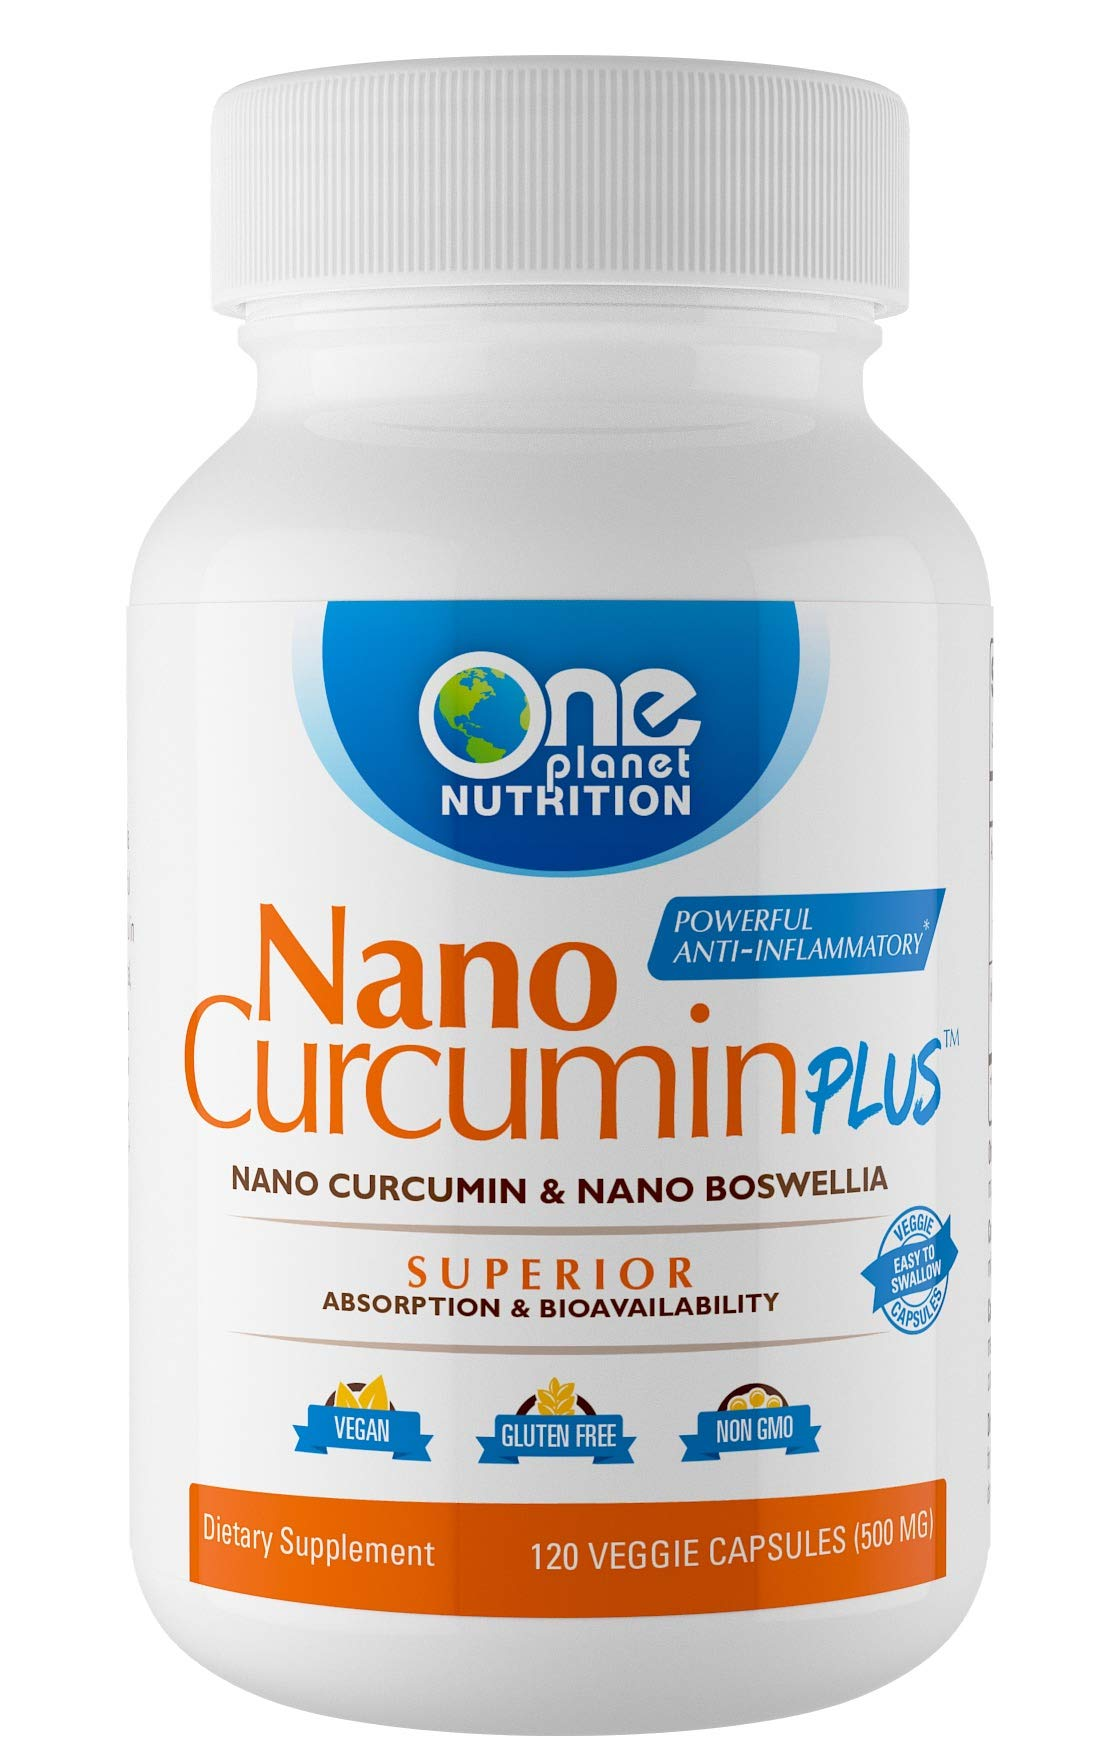 Nano Curcumin Plus - Now with Nano Curcumin and Nano Boswellia, Powerful Anti-inflammatory, Antioxidant, Joint Pain Reliever - 4 Month Supply (120 Capsules)